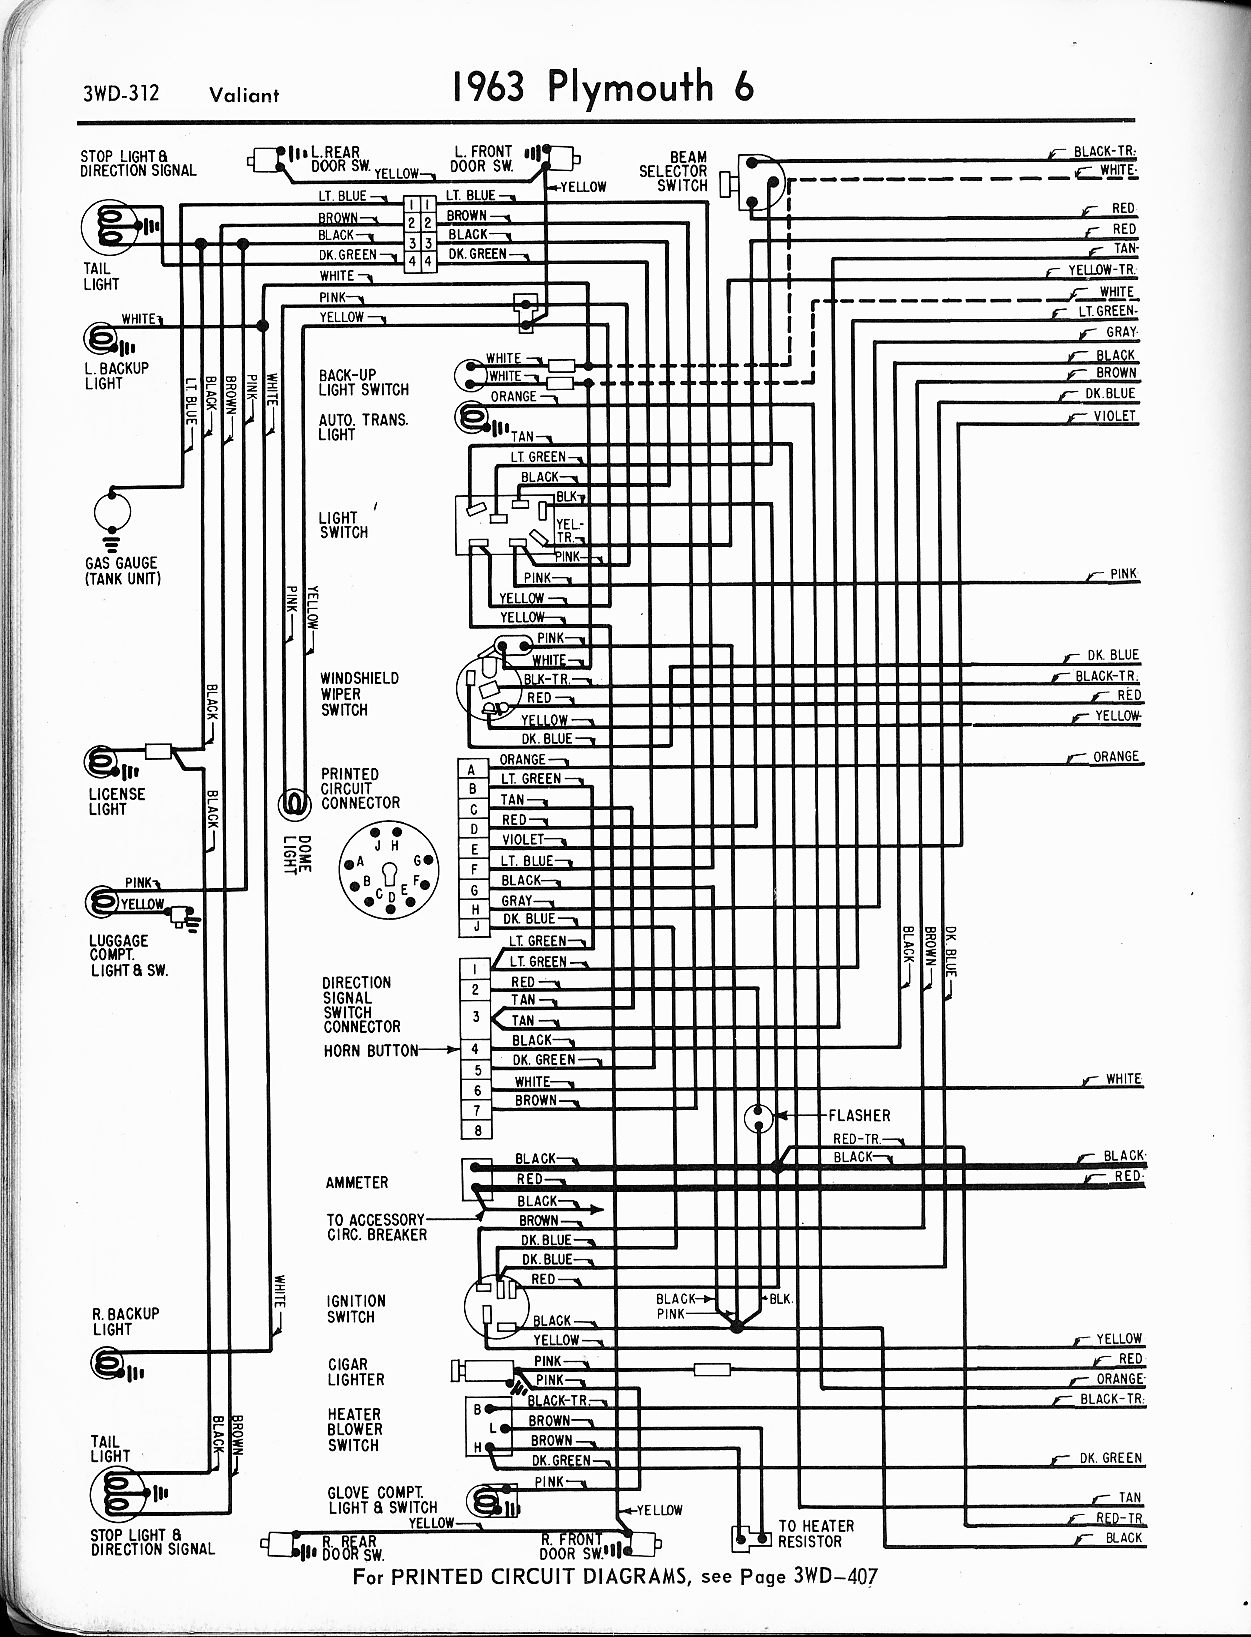 MWire5765 312 1956 1965 plymouth wiring the old car manual project 1975 plymouth duster wiring diagram at edmiracle.co